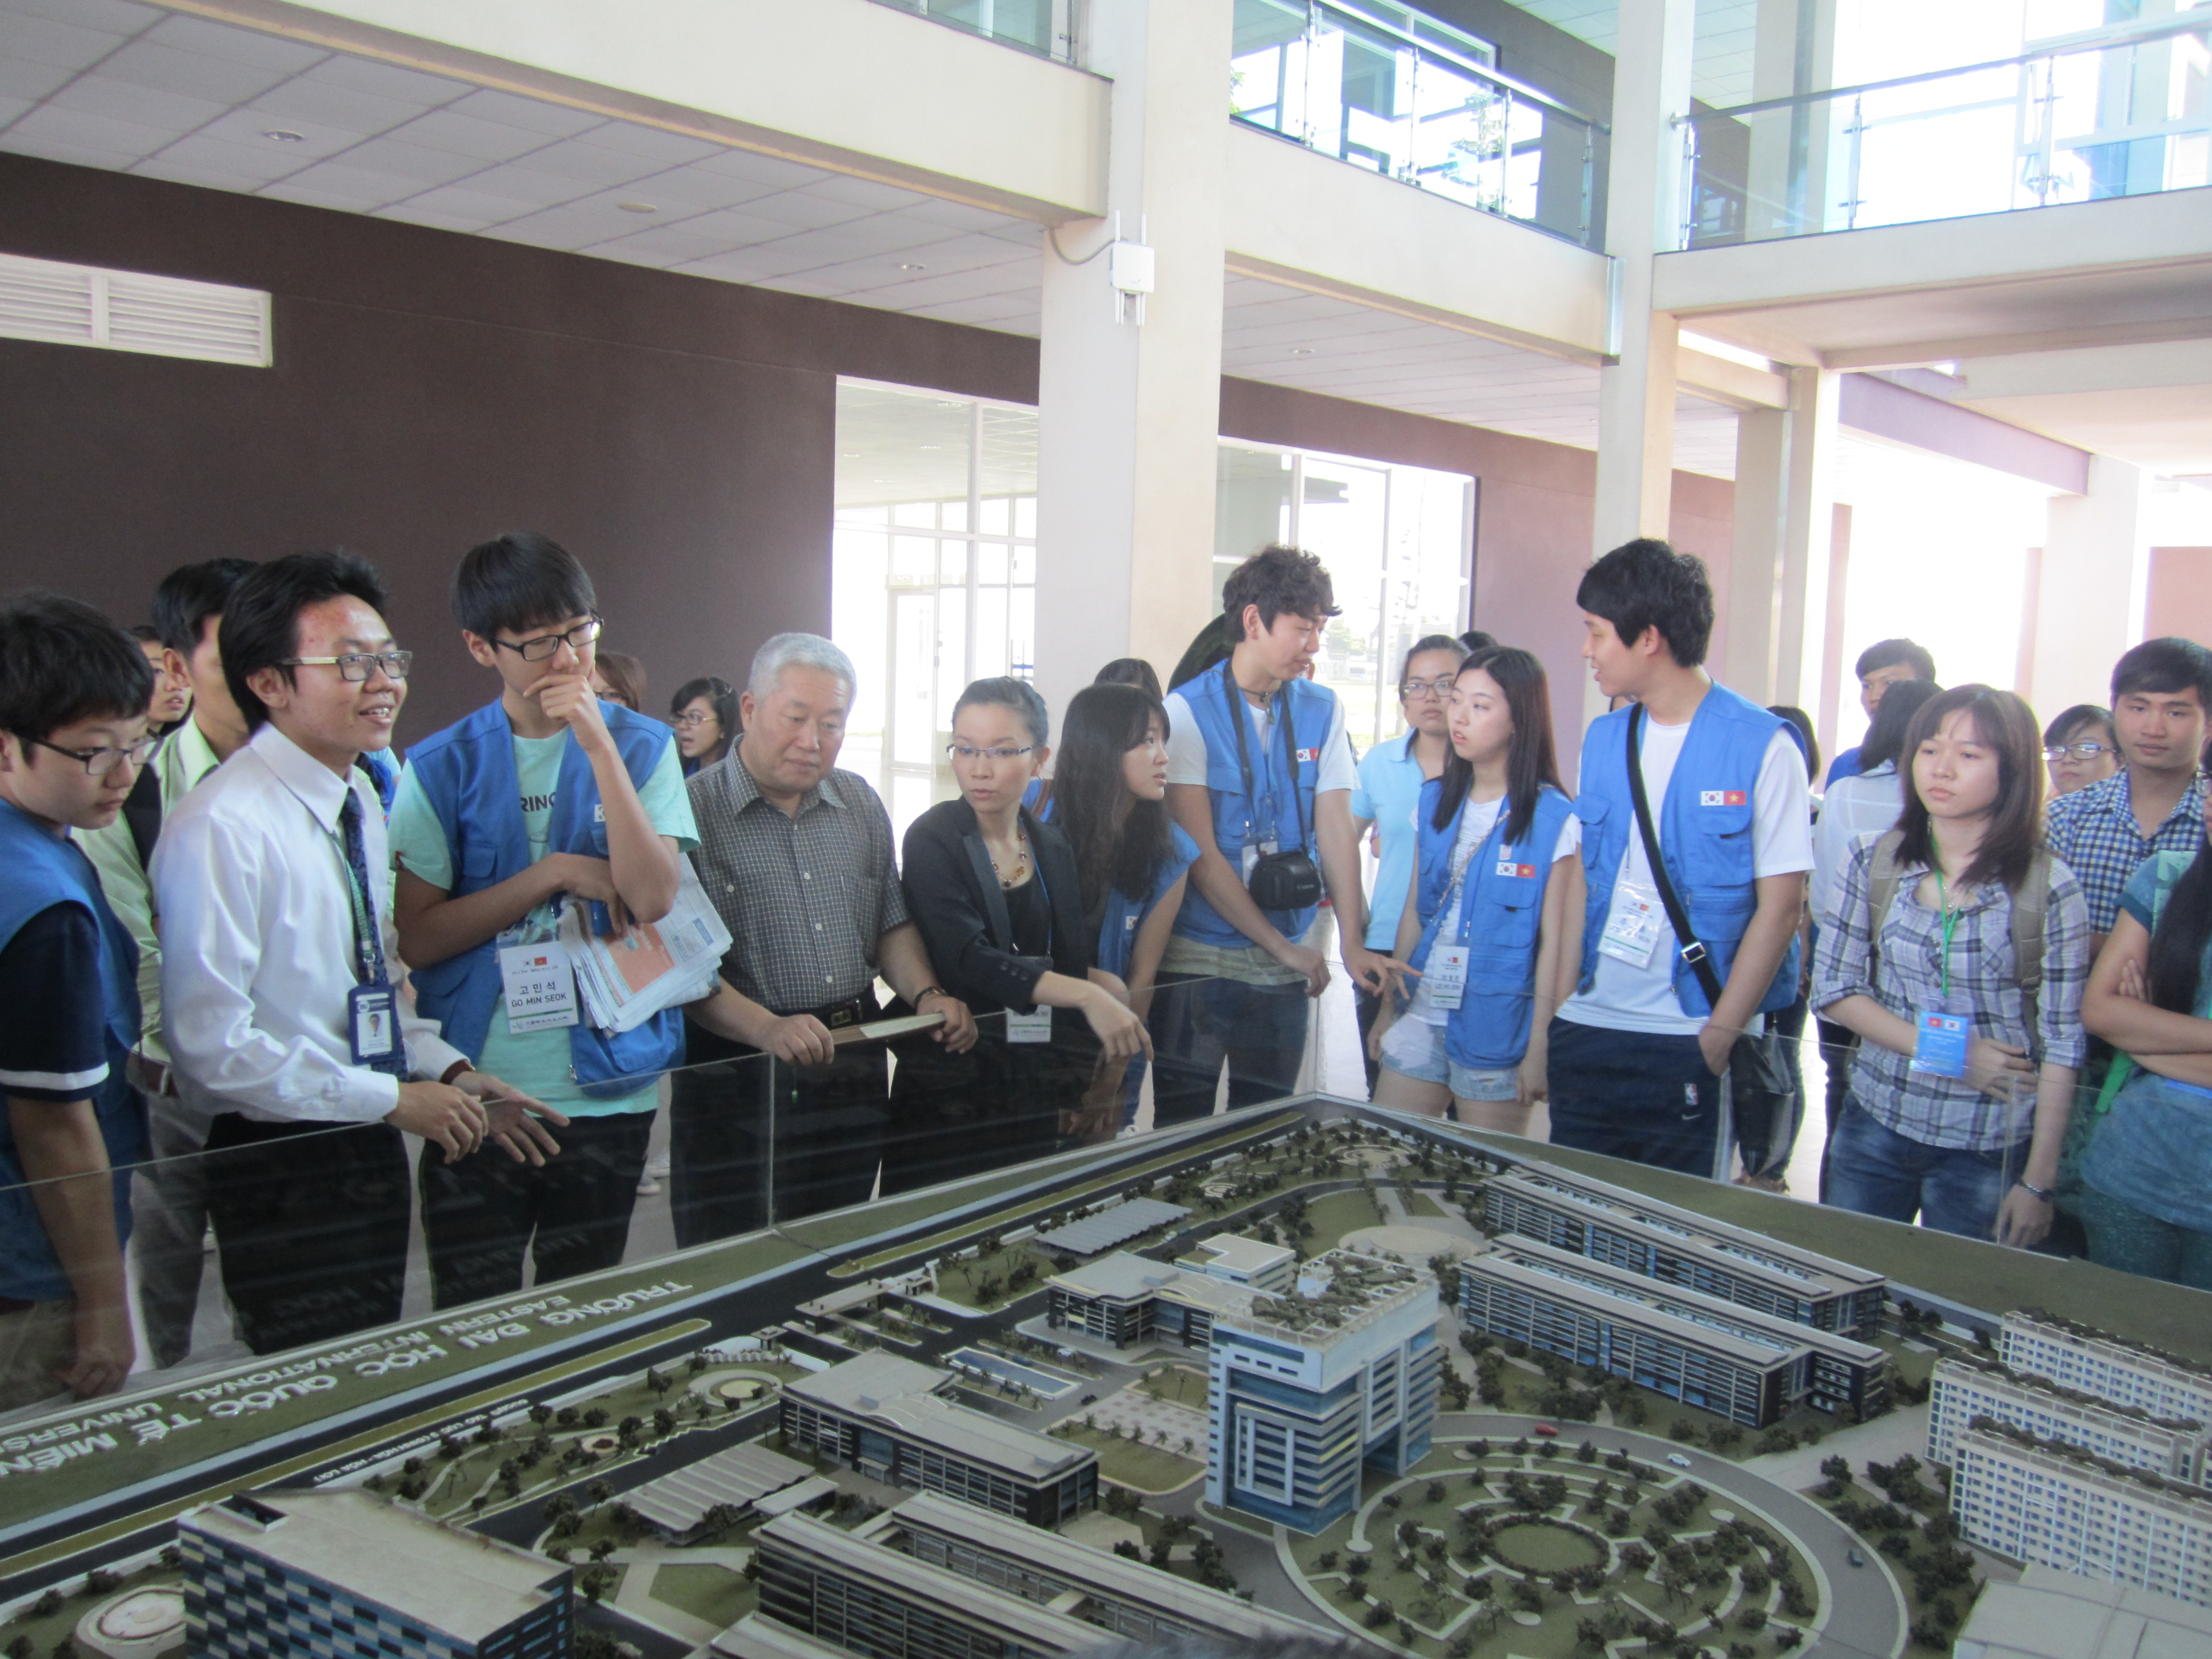 The delegation visits Eastern International University, Binh Duong